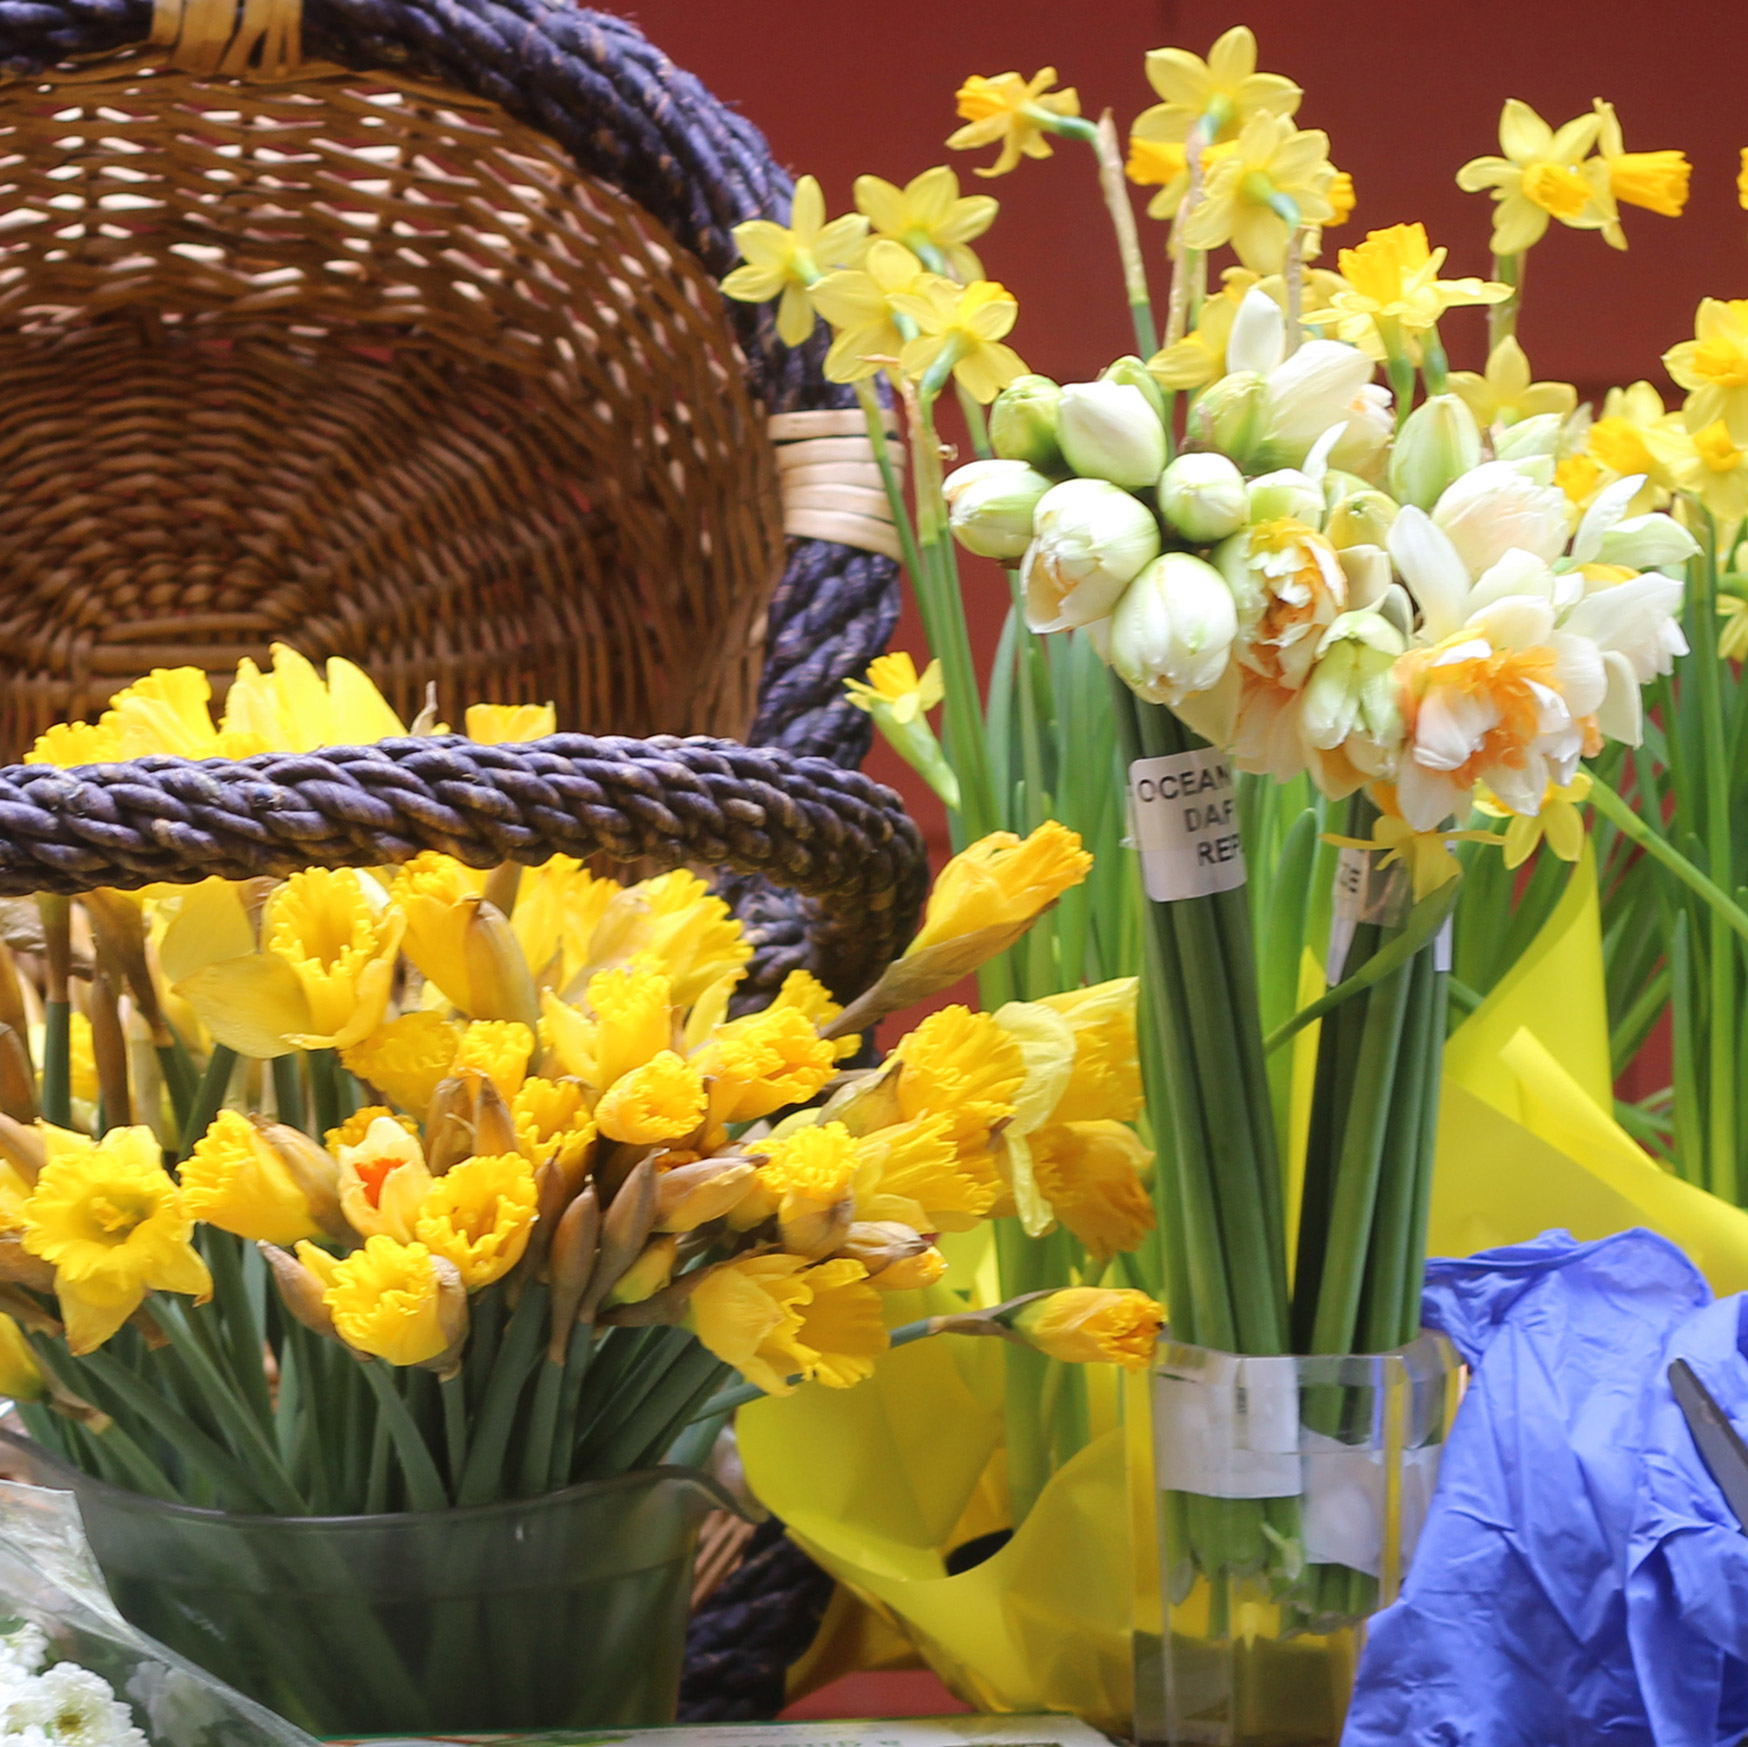 You will use a couple Yellow Daffodils and White Double Daffodils.